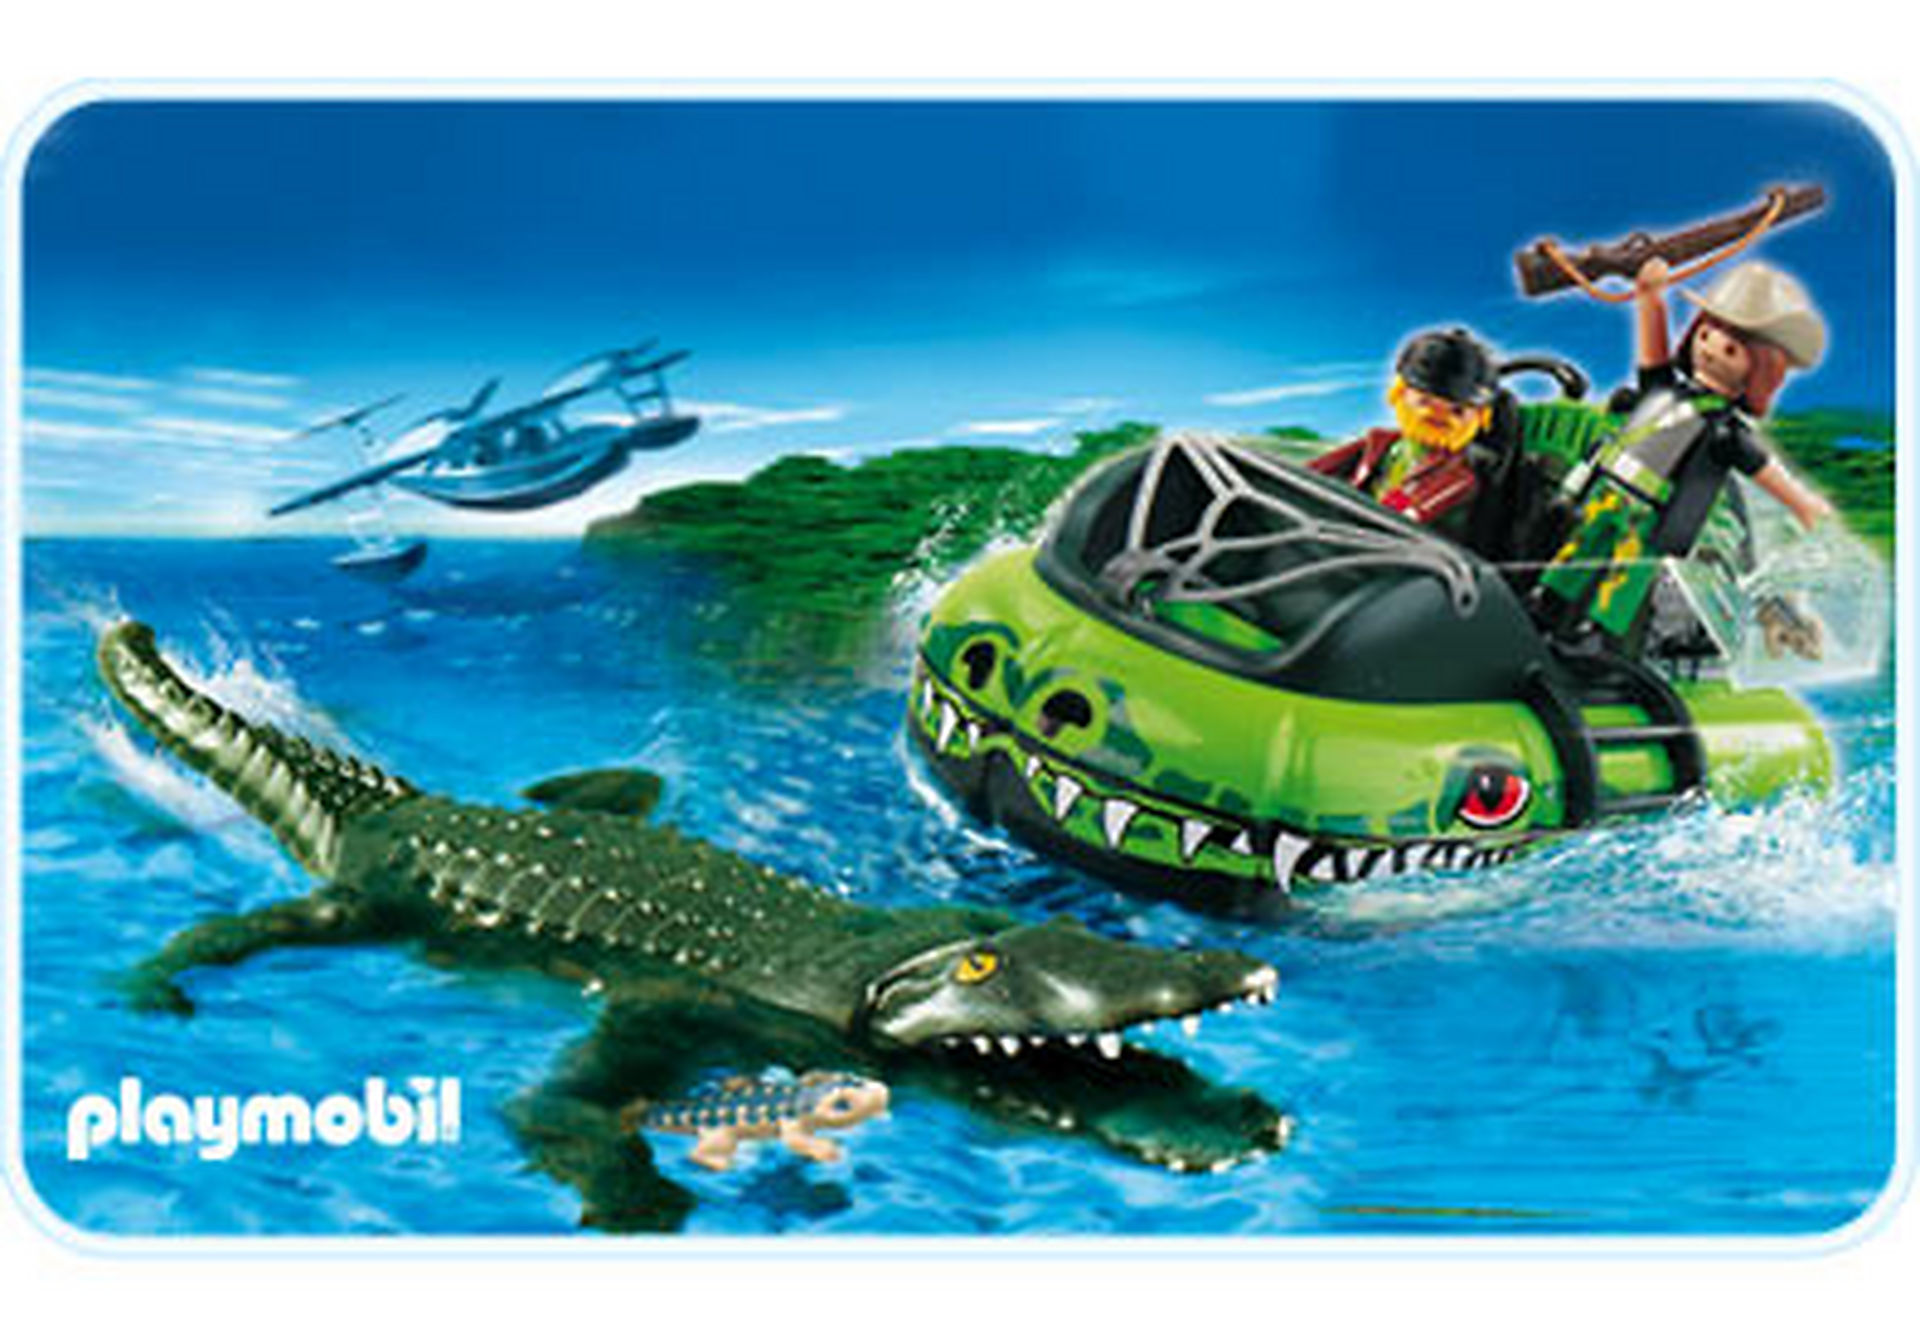 http://media.playmobil.com/i/playmobil/4446-A_product_detail/Gangster-Hovercraft